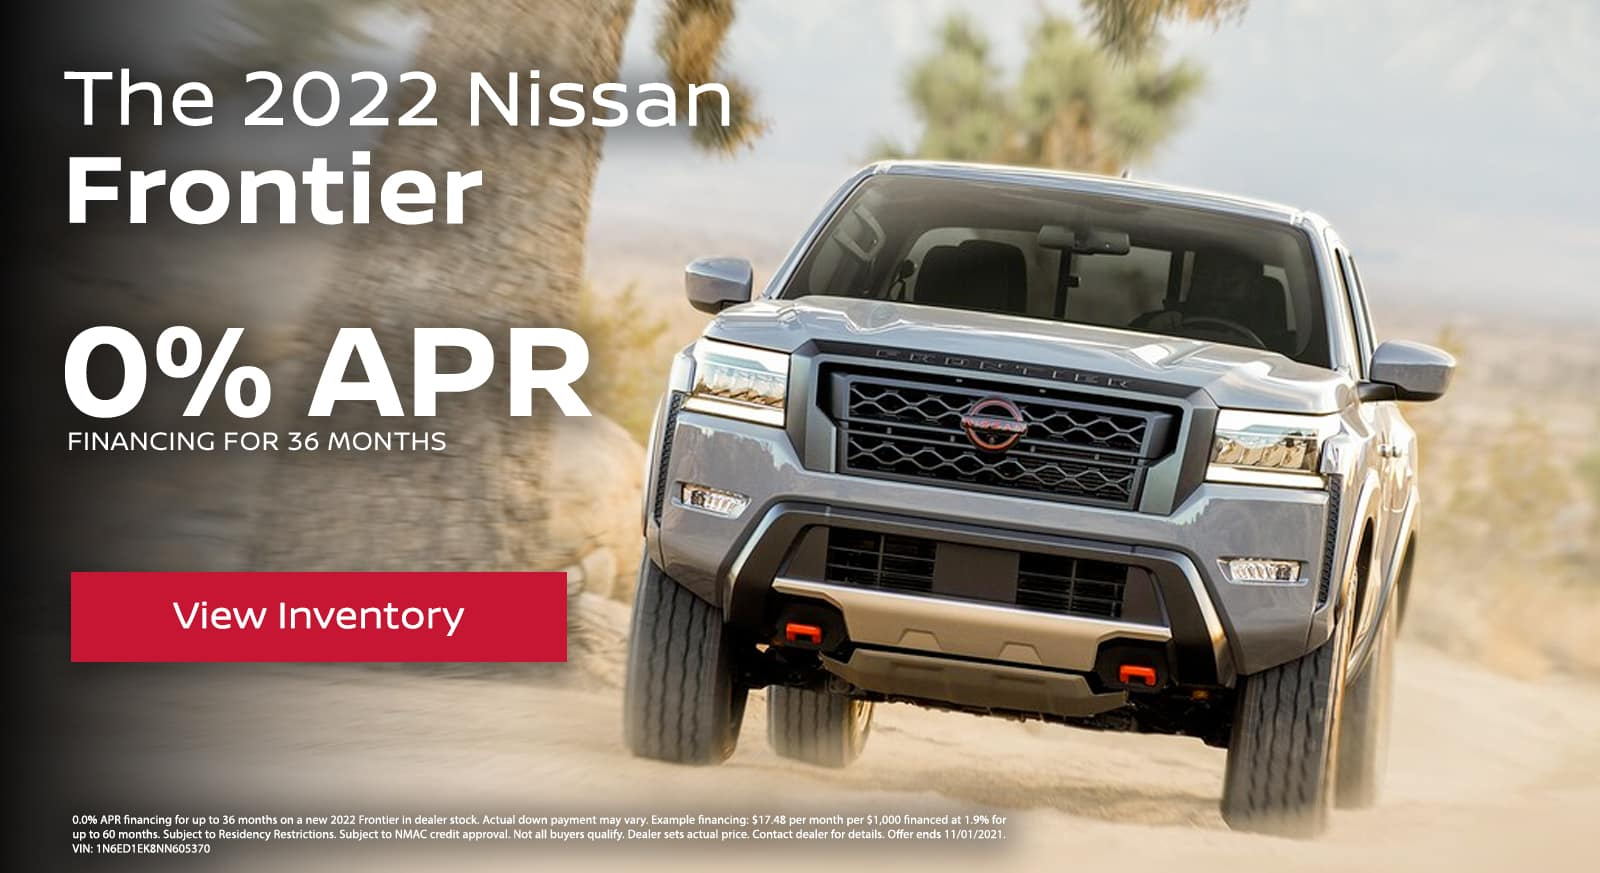 2022 Nissan Frontier 0.0% APR Financing for 36 Months